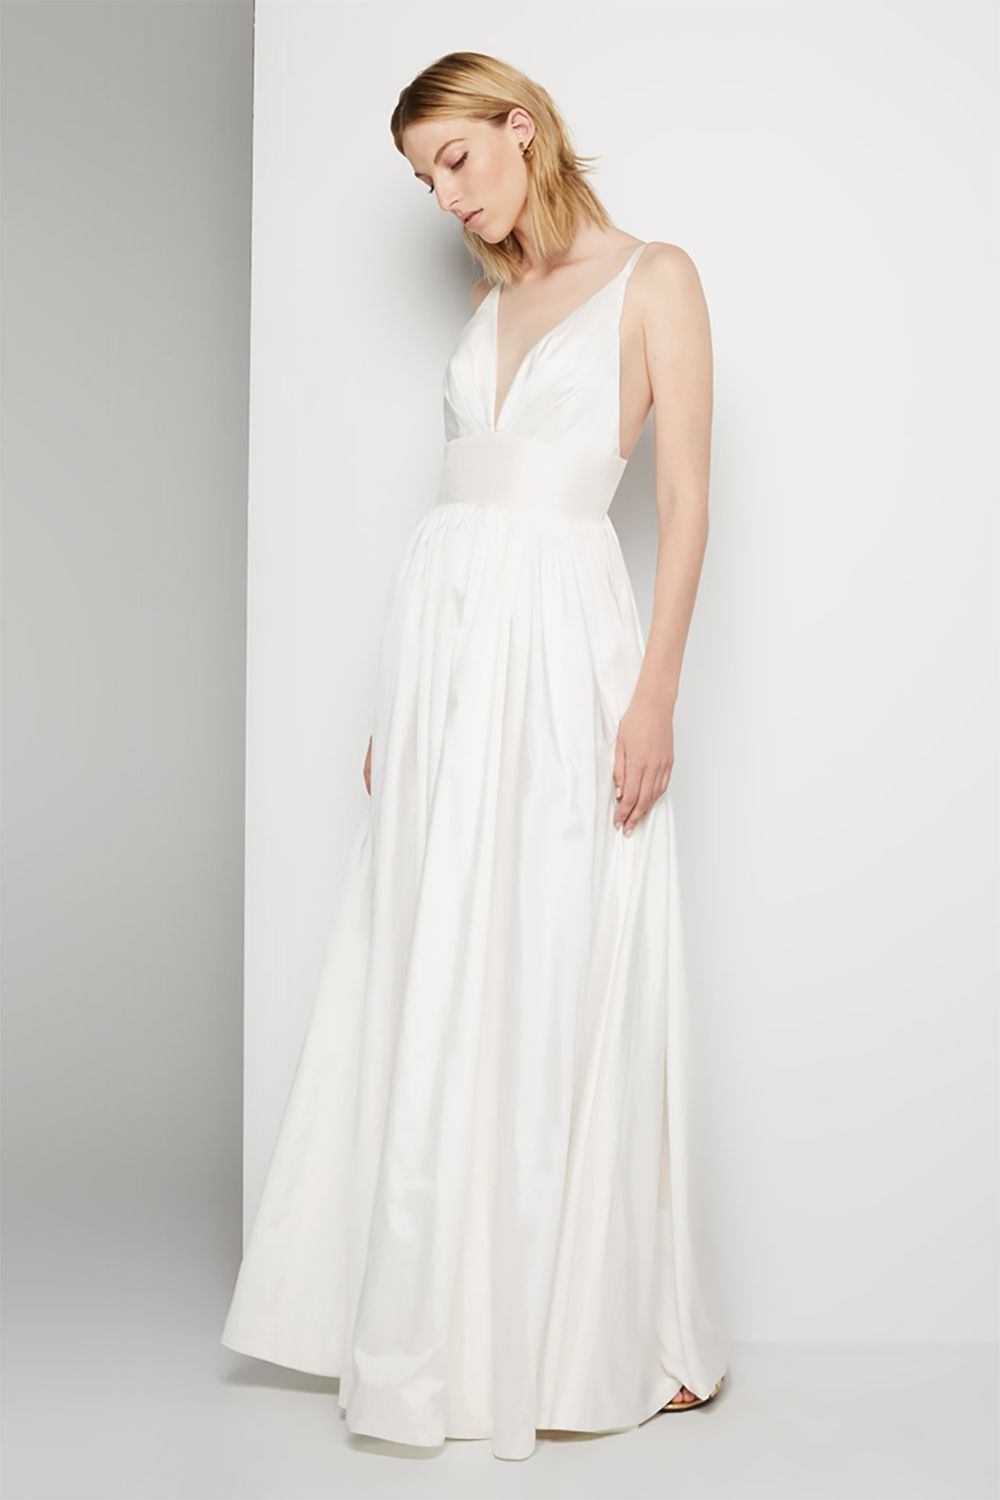 "<p>You might've looked into the online retailer because they let you pick out colors and customize necklines and skirts. They do that for their newly launched wedding category too, which includes this ultra-flattering spaghetti-strap number.&nbsp&#x3B;</p><p>$239, <a href=""https://www.fameandpartners.com/dresses/dress-astrid-814?color=white"" target=""_blank"" data-tracking-id=""recirc-text-link"">fameandpartners.com</a>.</p>"